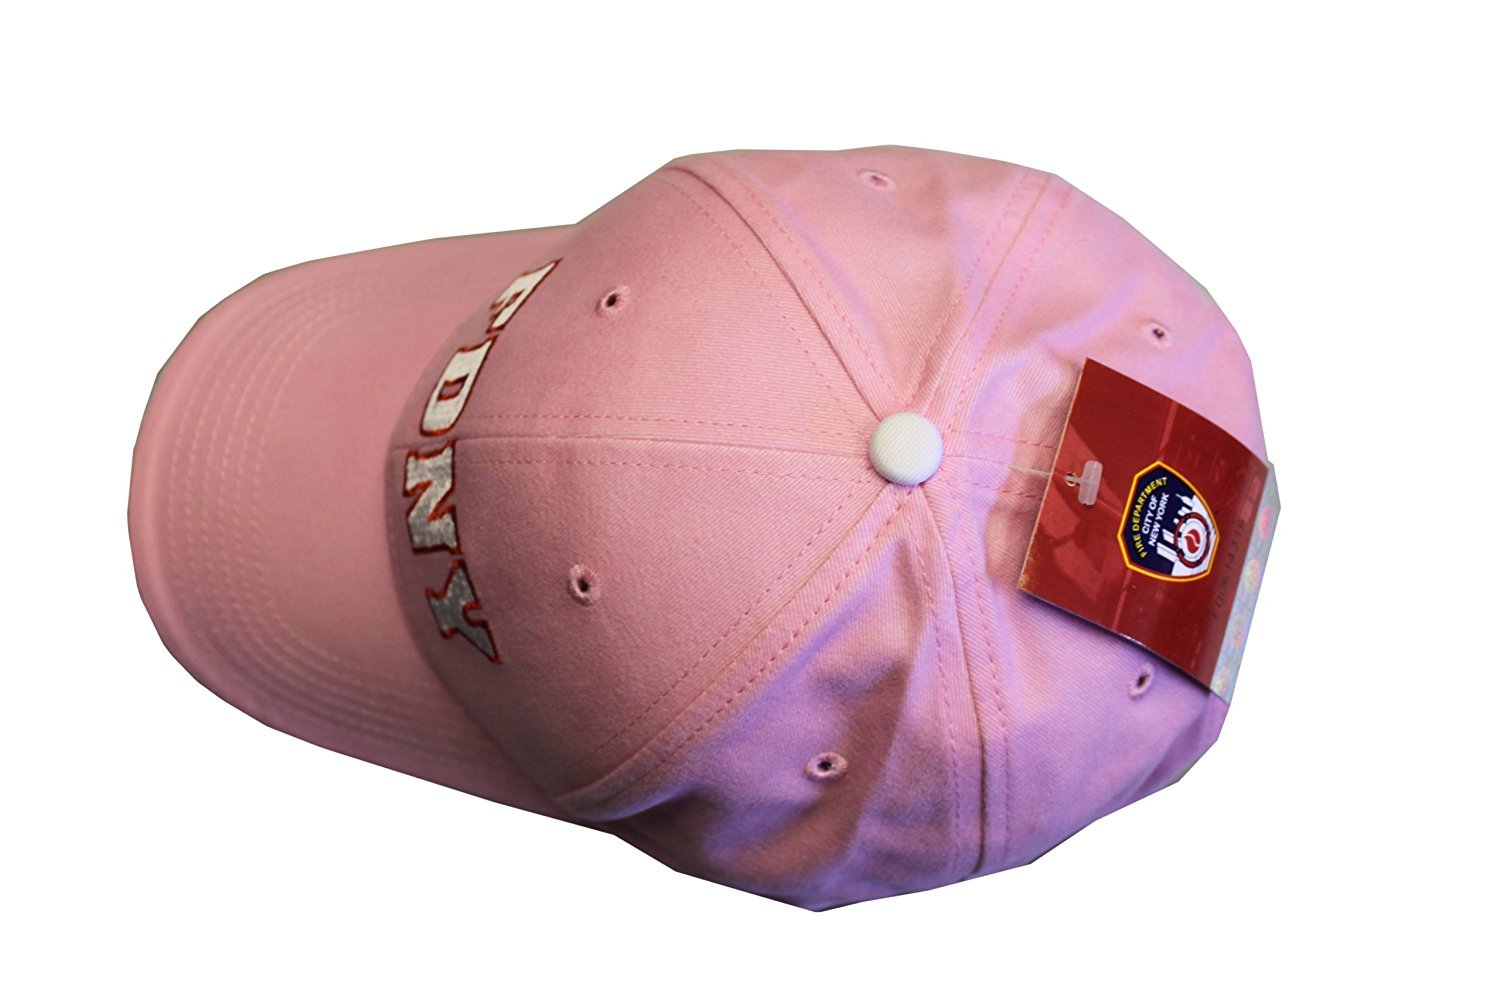 8ce9601701f FDNY Baseball Hat Fire Department Of New York City Pink   White One Size  Womens. Product Details